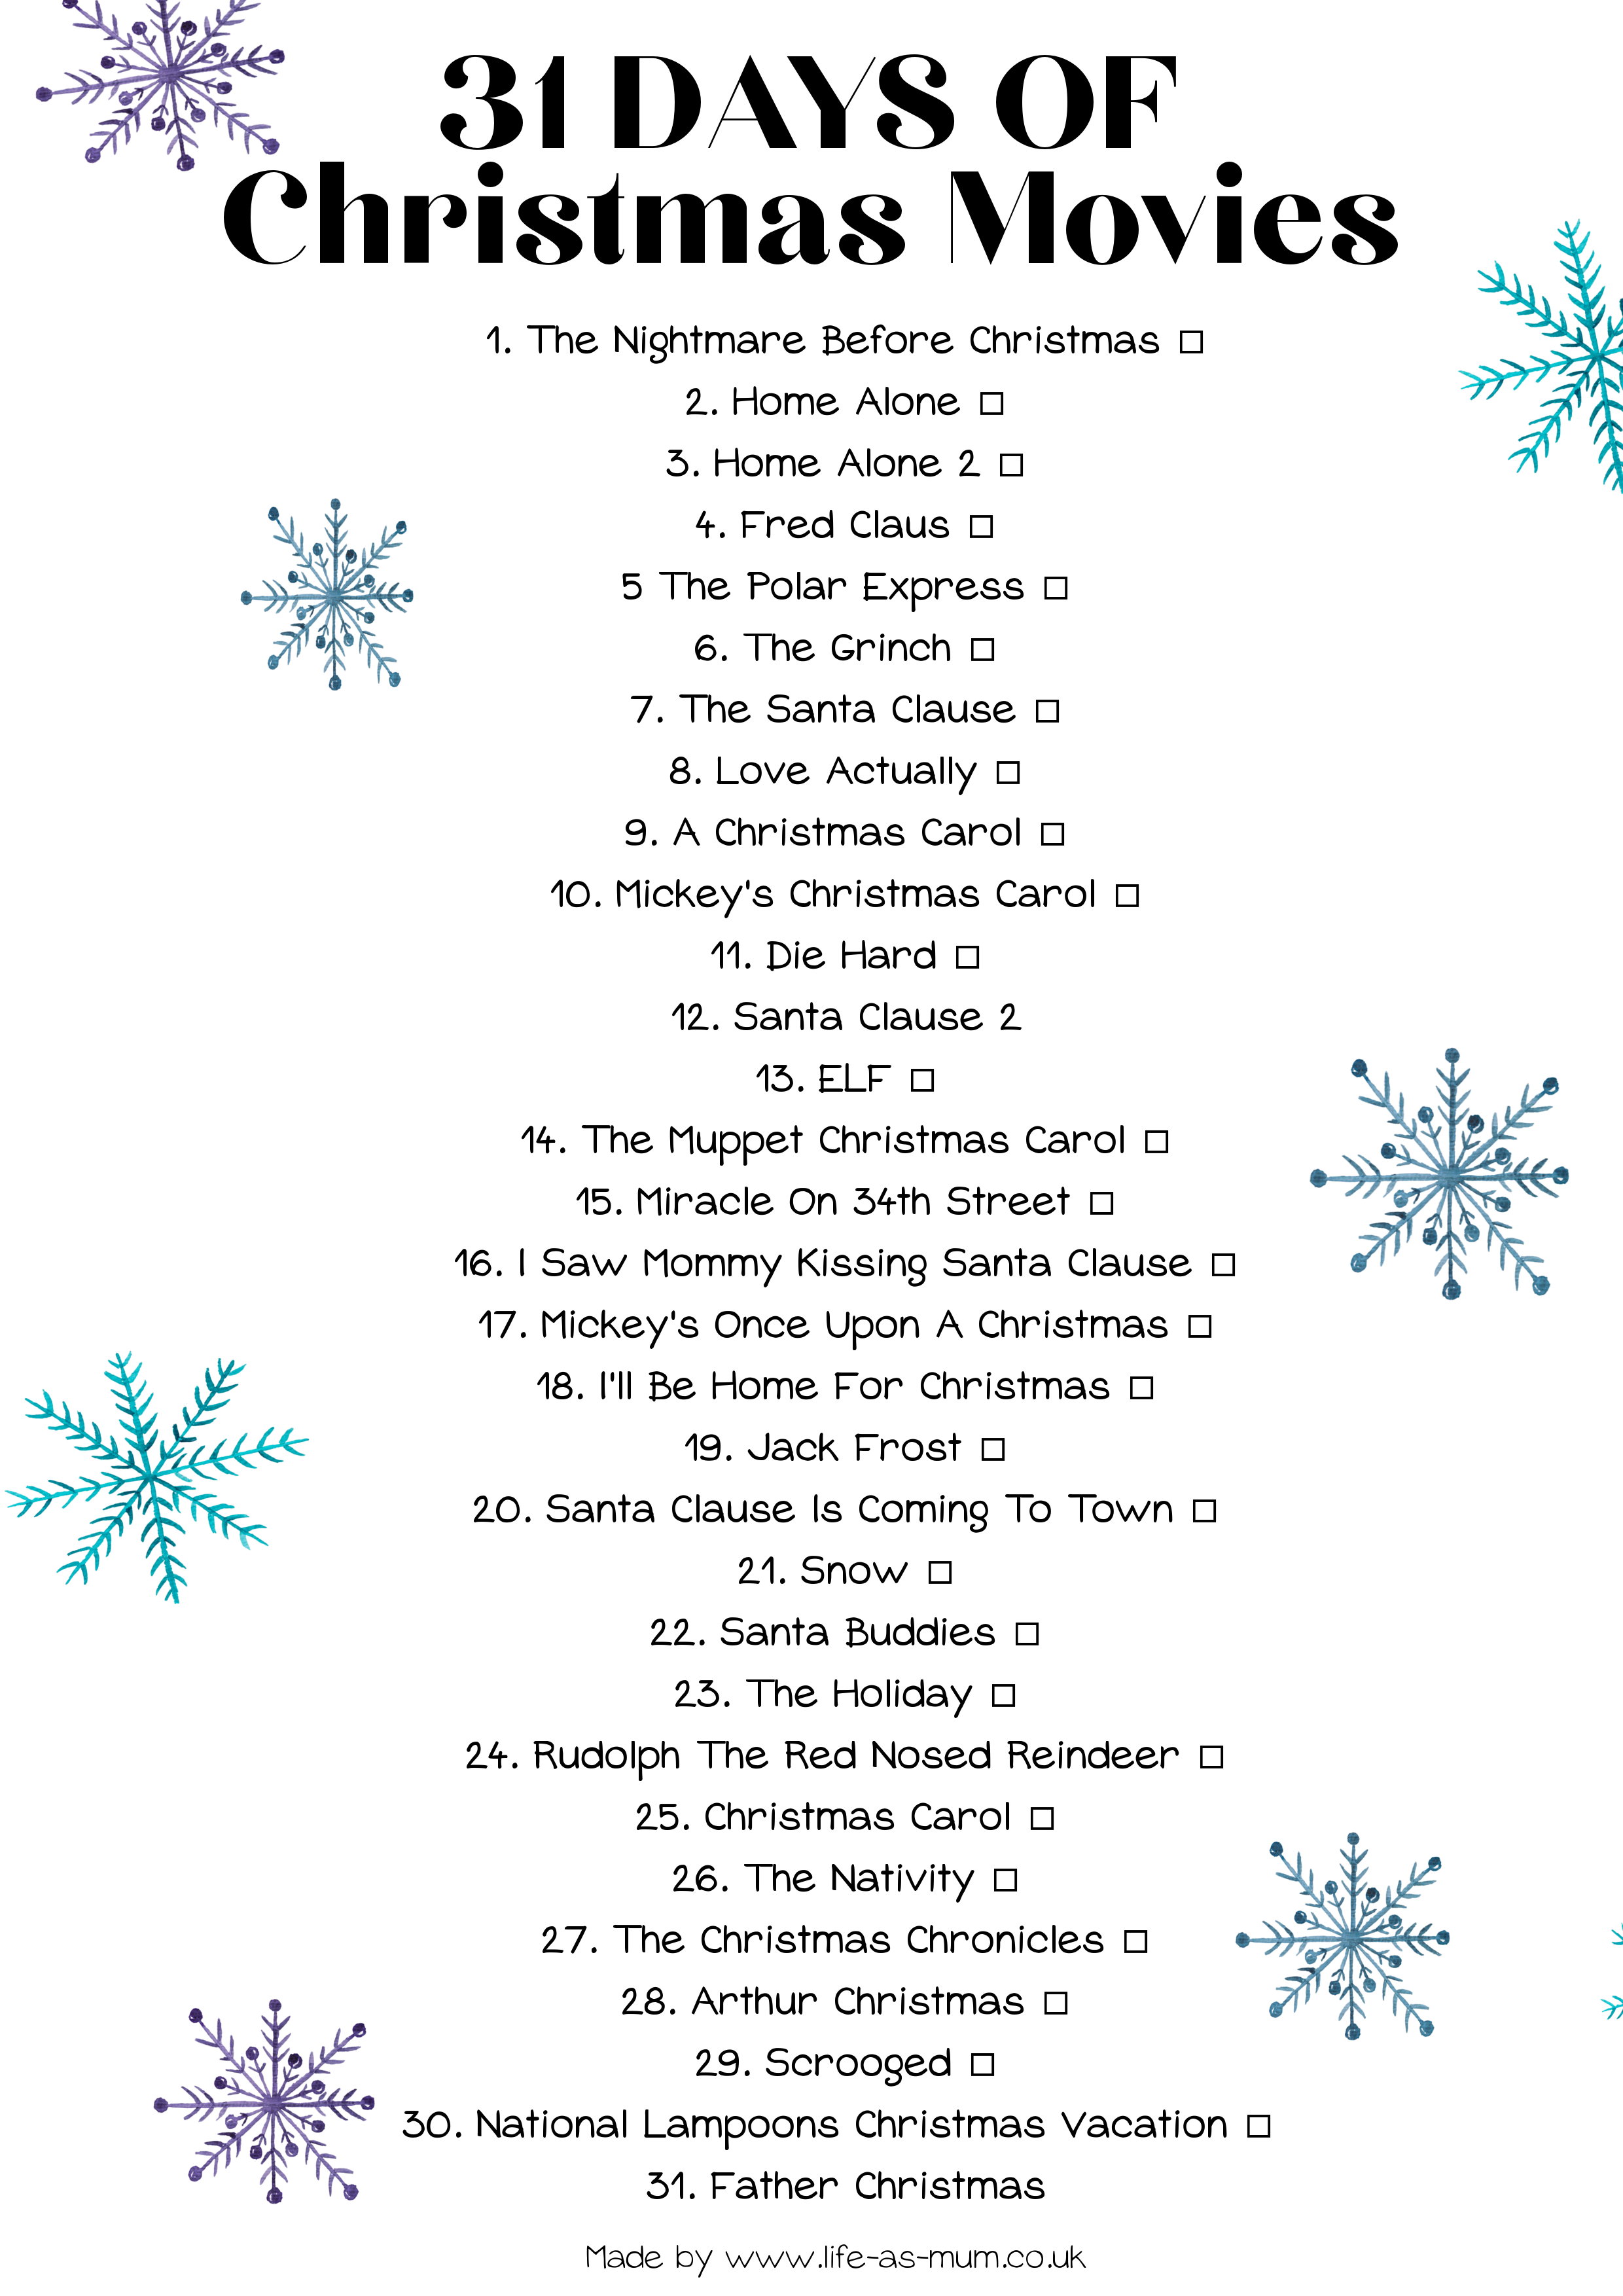 A list of Christmas Movies! Watch one every day throughout